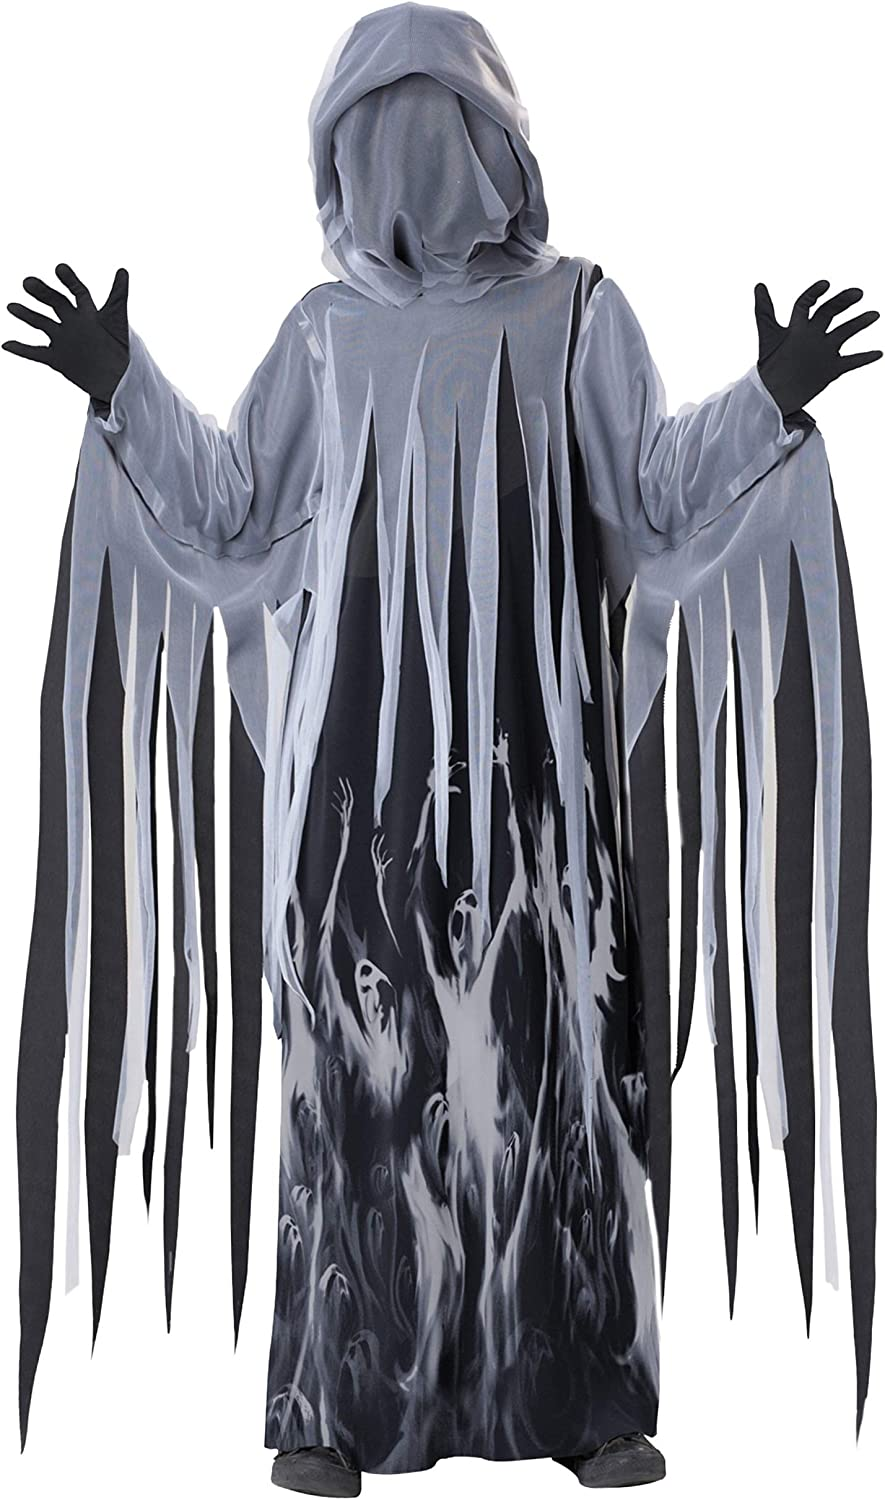 Inexpensive Child Soul Taker Costume Los Angeles Mall